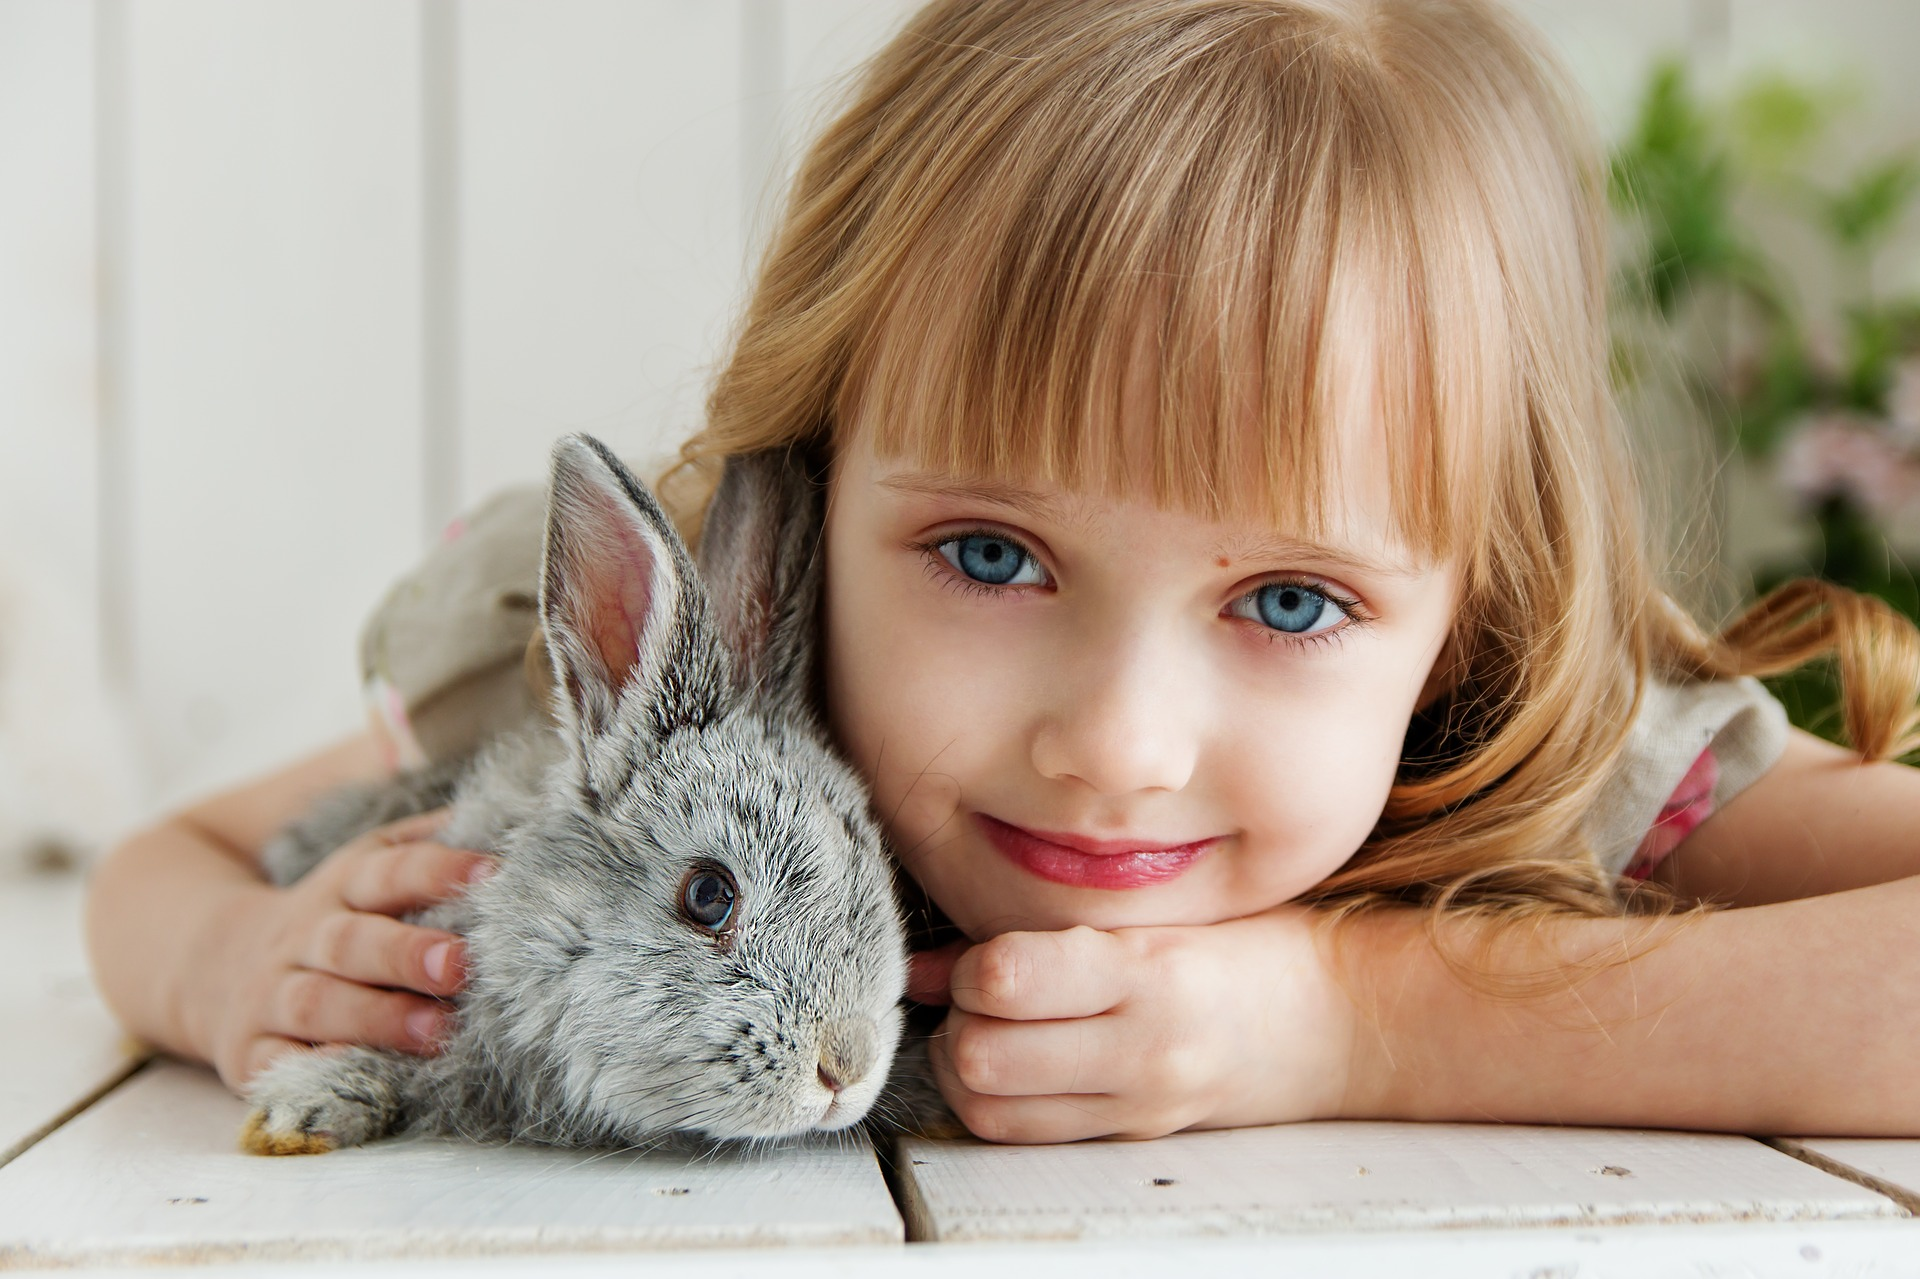 The Rabbit Listened is an amazing book that teaches us the true power of compassion